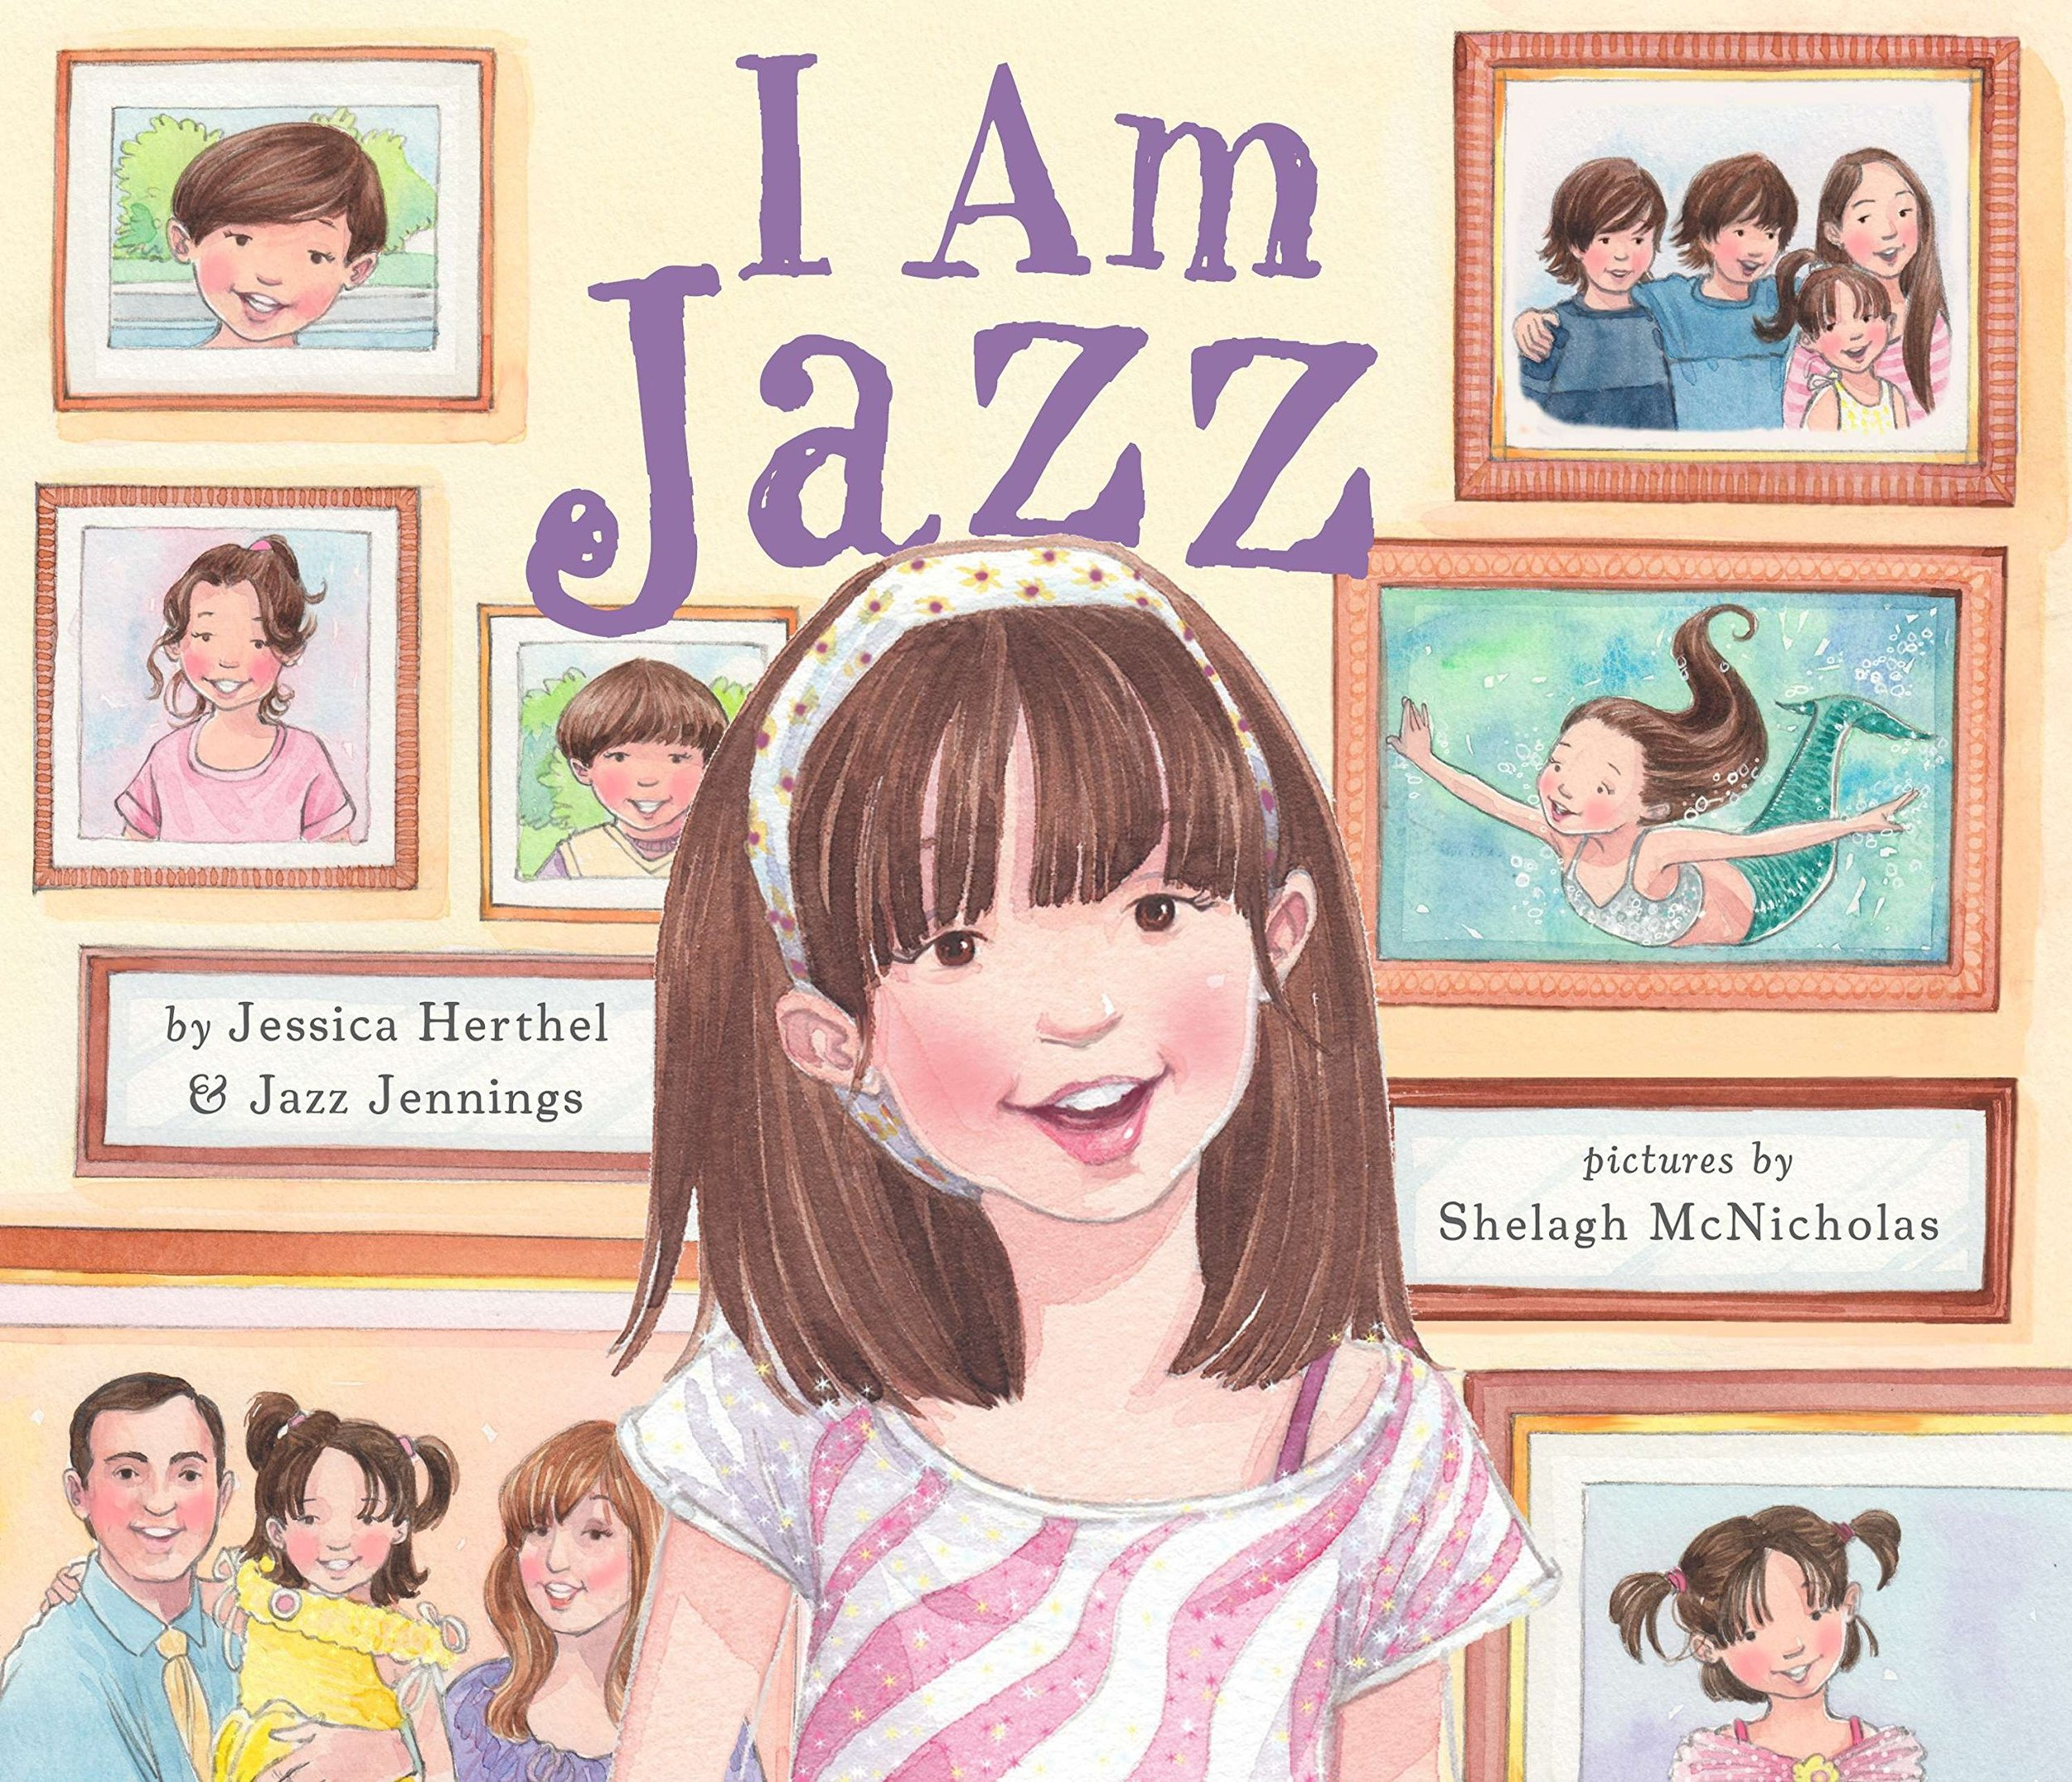 I am Jazz - By Jessica Herthel, Jazz JenningsThe story of a transgender child based on the real-life experience of Jazz Jennings, who has become a spokesperson for transkids everywhere.From the time she was two years old, Jazz knew that she had a girl's brain in a boy's body. She loved pink and dressing up as a mermaid and didn't feel like herself in boys' clothing. This confused her family, until they took her to a doctor who said that Jazz was transgender and that she was born that way. Jazz's story is based on her real-life experience and she tells it in a simple, clear way that will be appreciated by picture book readers, their parents, and teachers.